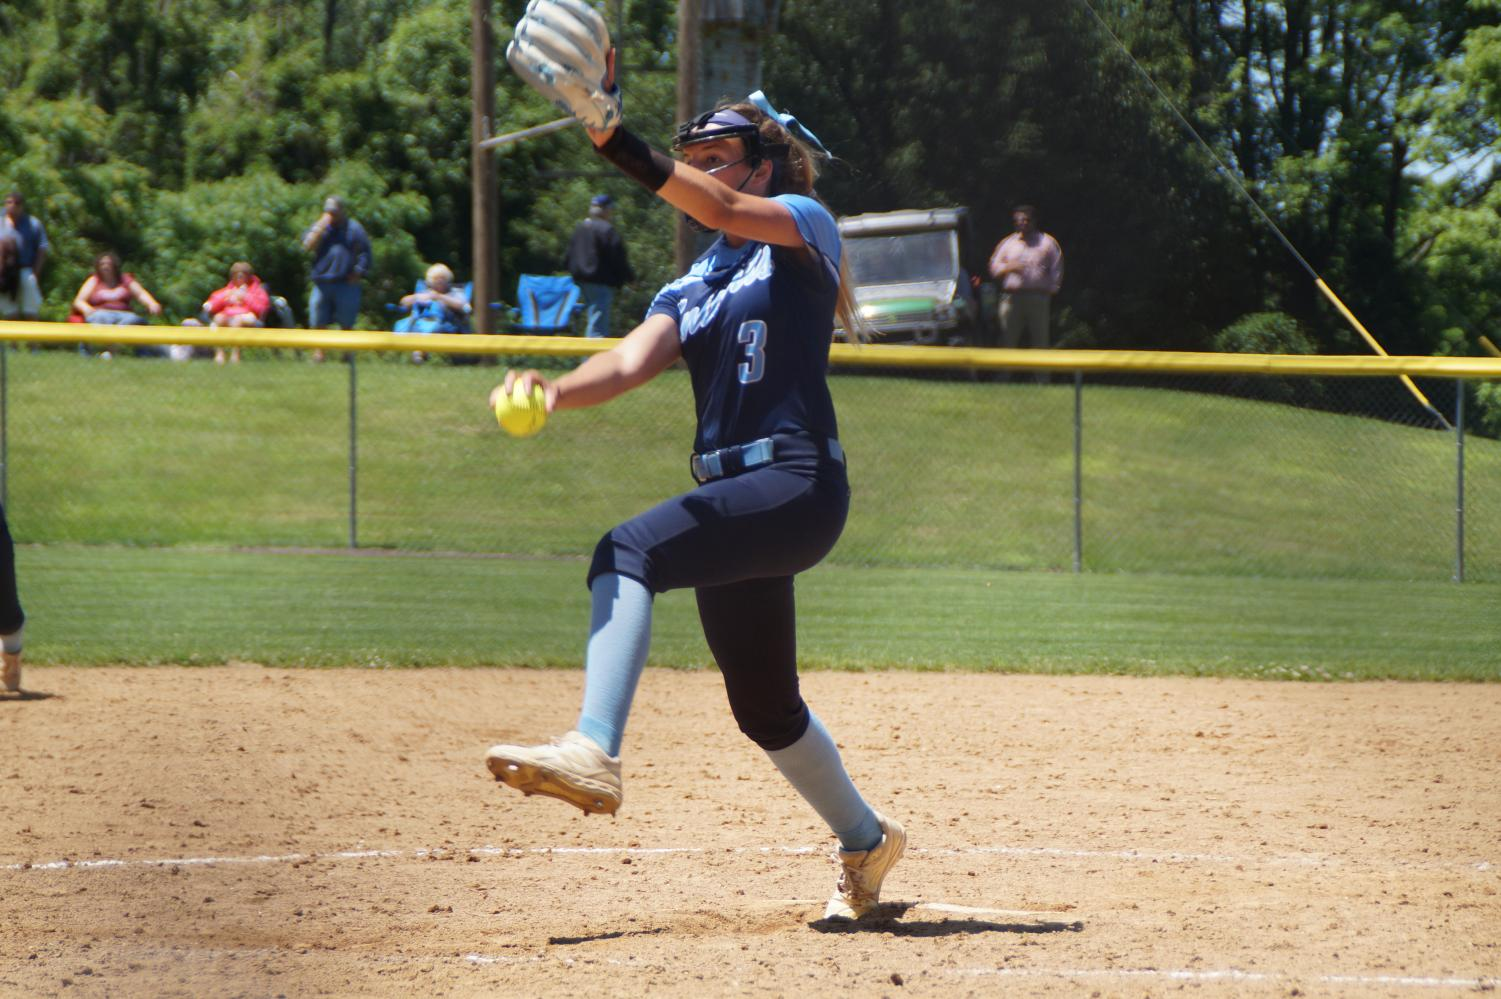 Mady Volpe picked up the complete game shutout victory by striking out 15 batters and allowing only 1 hit.